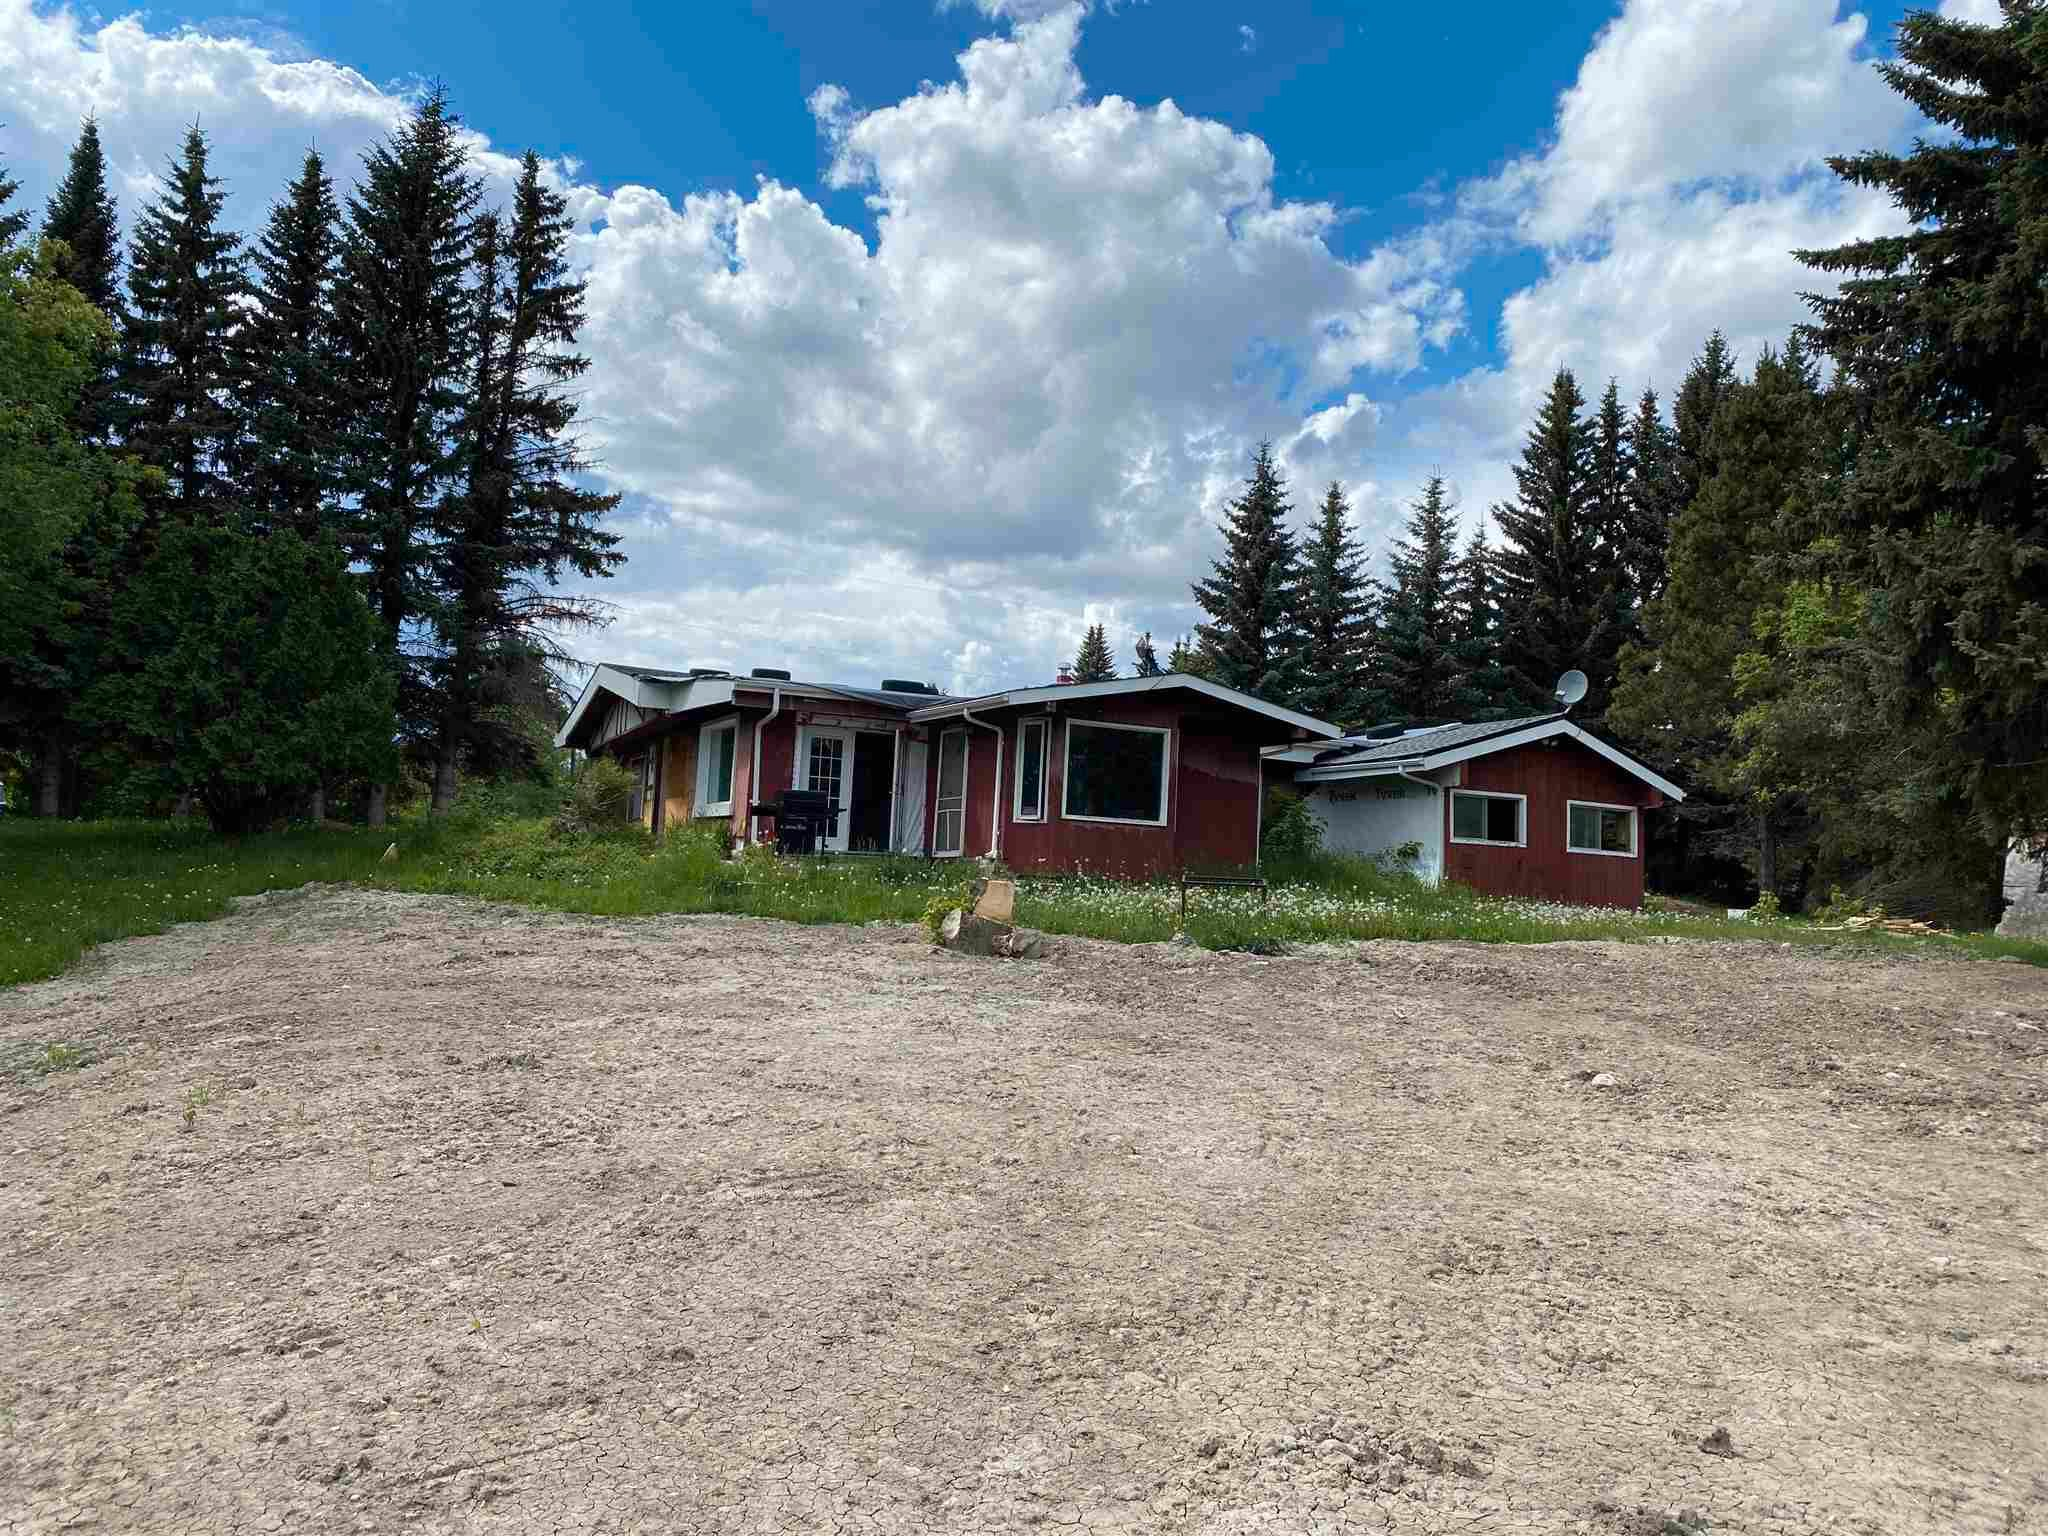 Main Photo: 109 23211 TWP RD 520: Rural Strathcona County House for sale : MLS®# E4248139